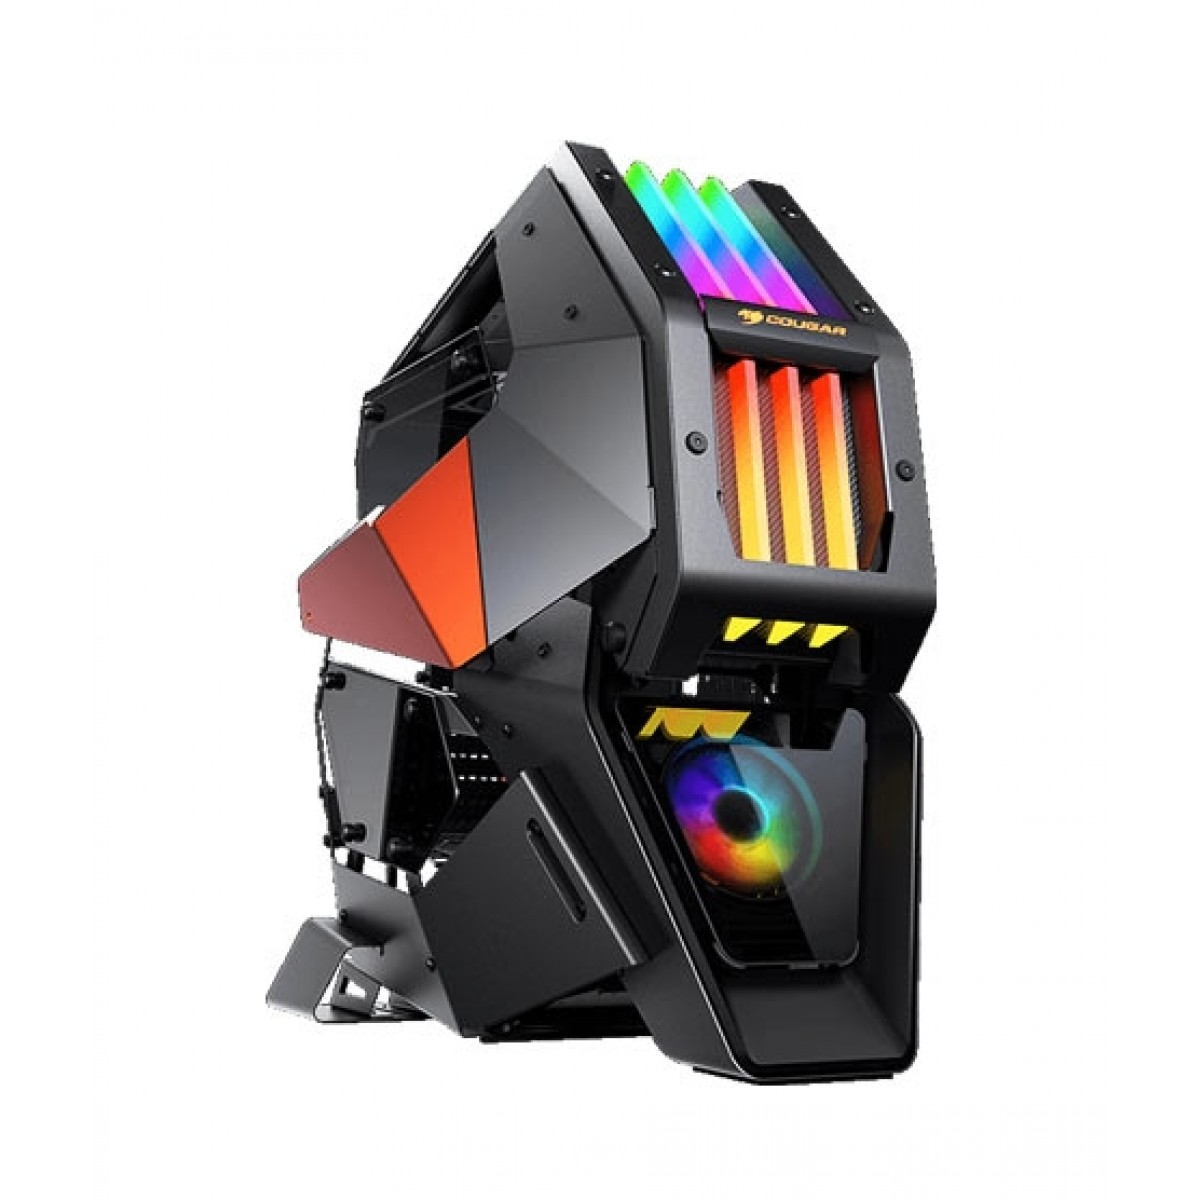 Cougar Conquer 2 Ultimate Full TowerCASE